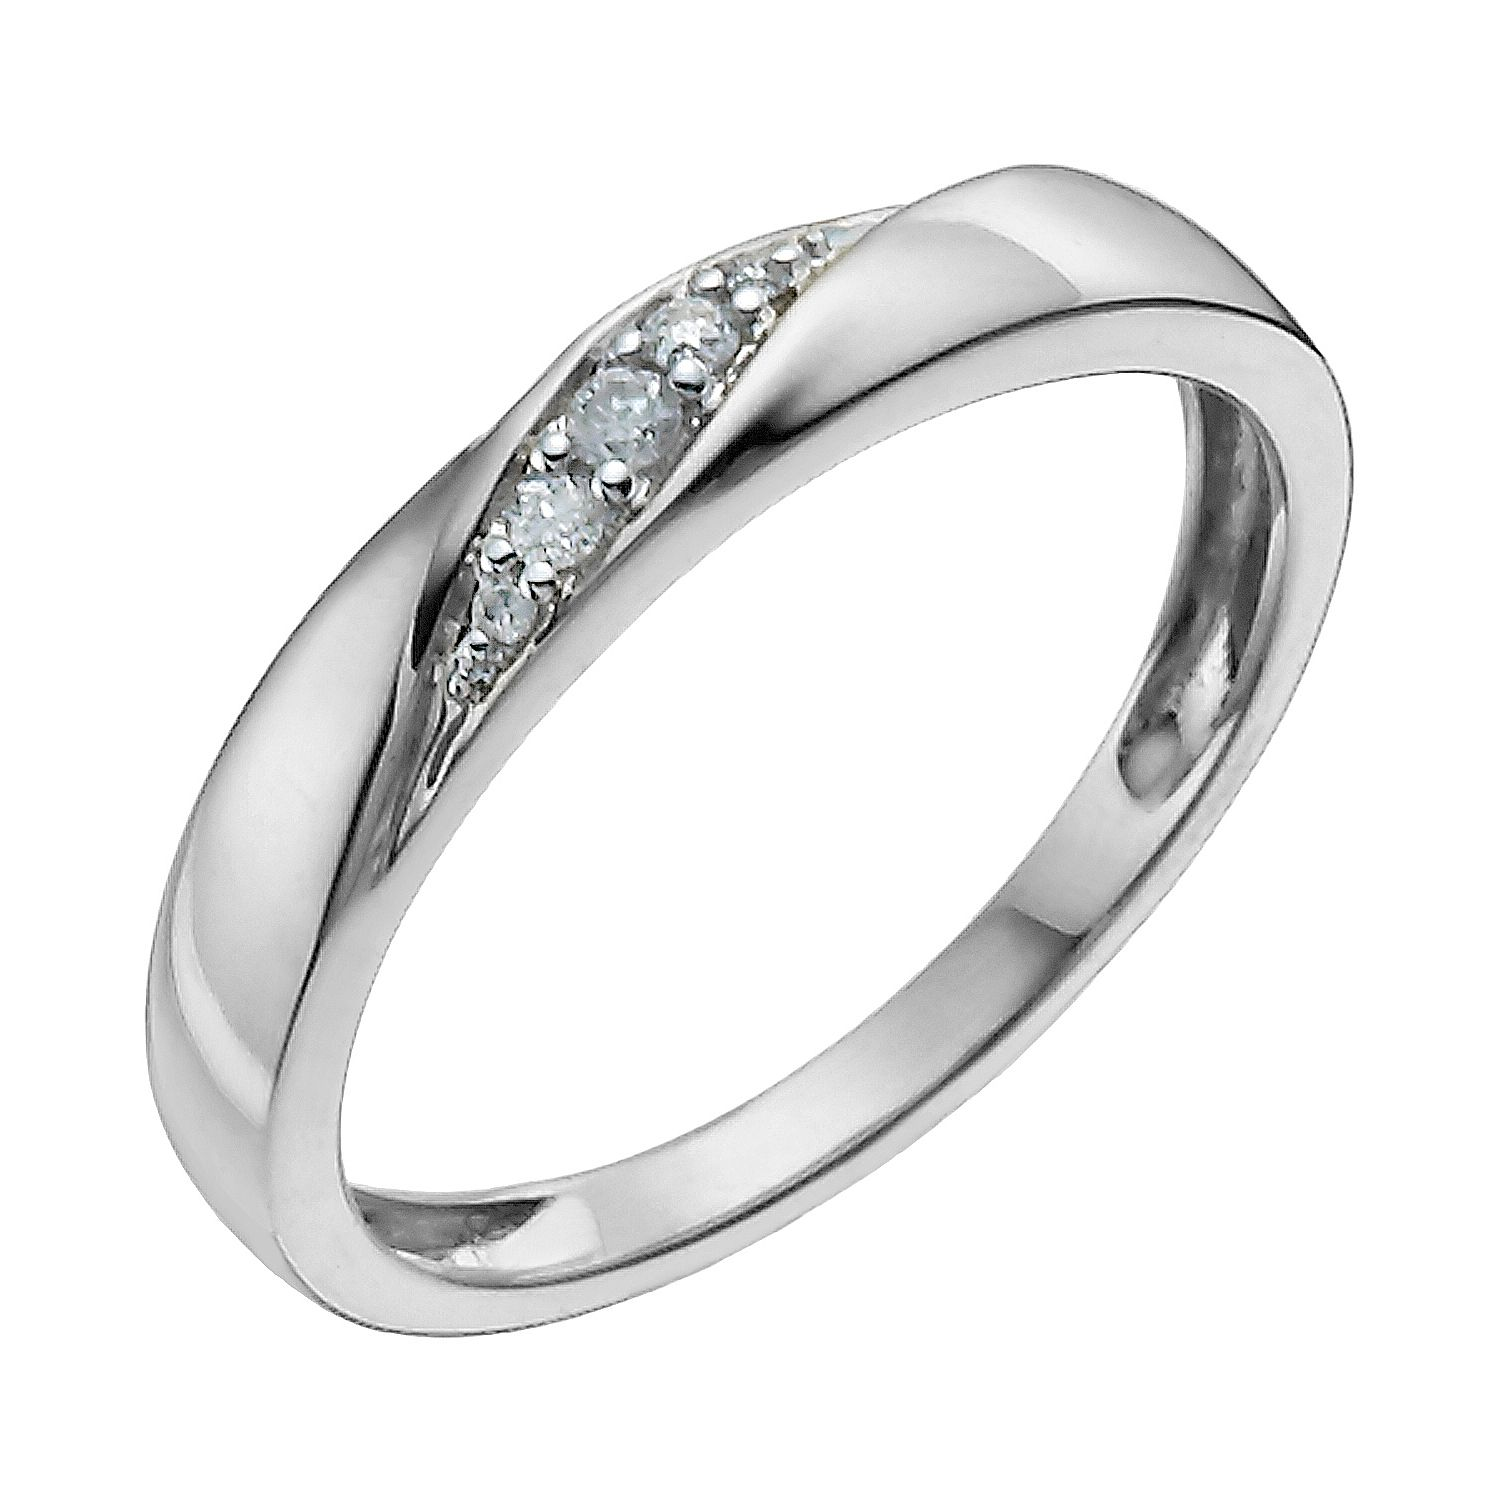 band platinum jones wedding bands diamond cost webstore ernest ring product number d